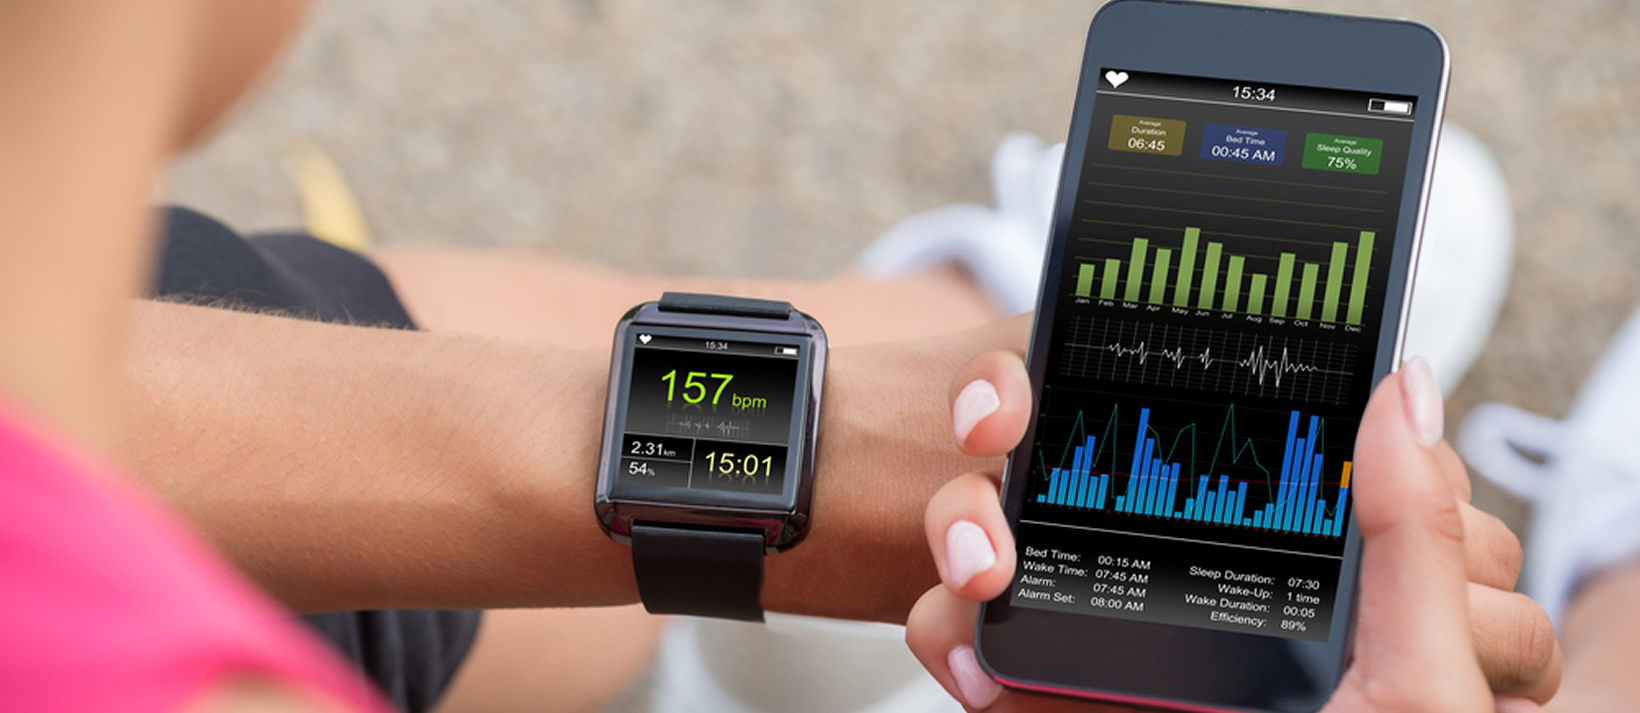 Wearables and Apps-How to Track Your Body